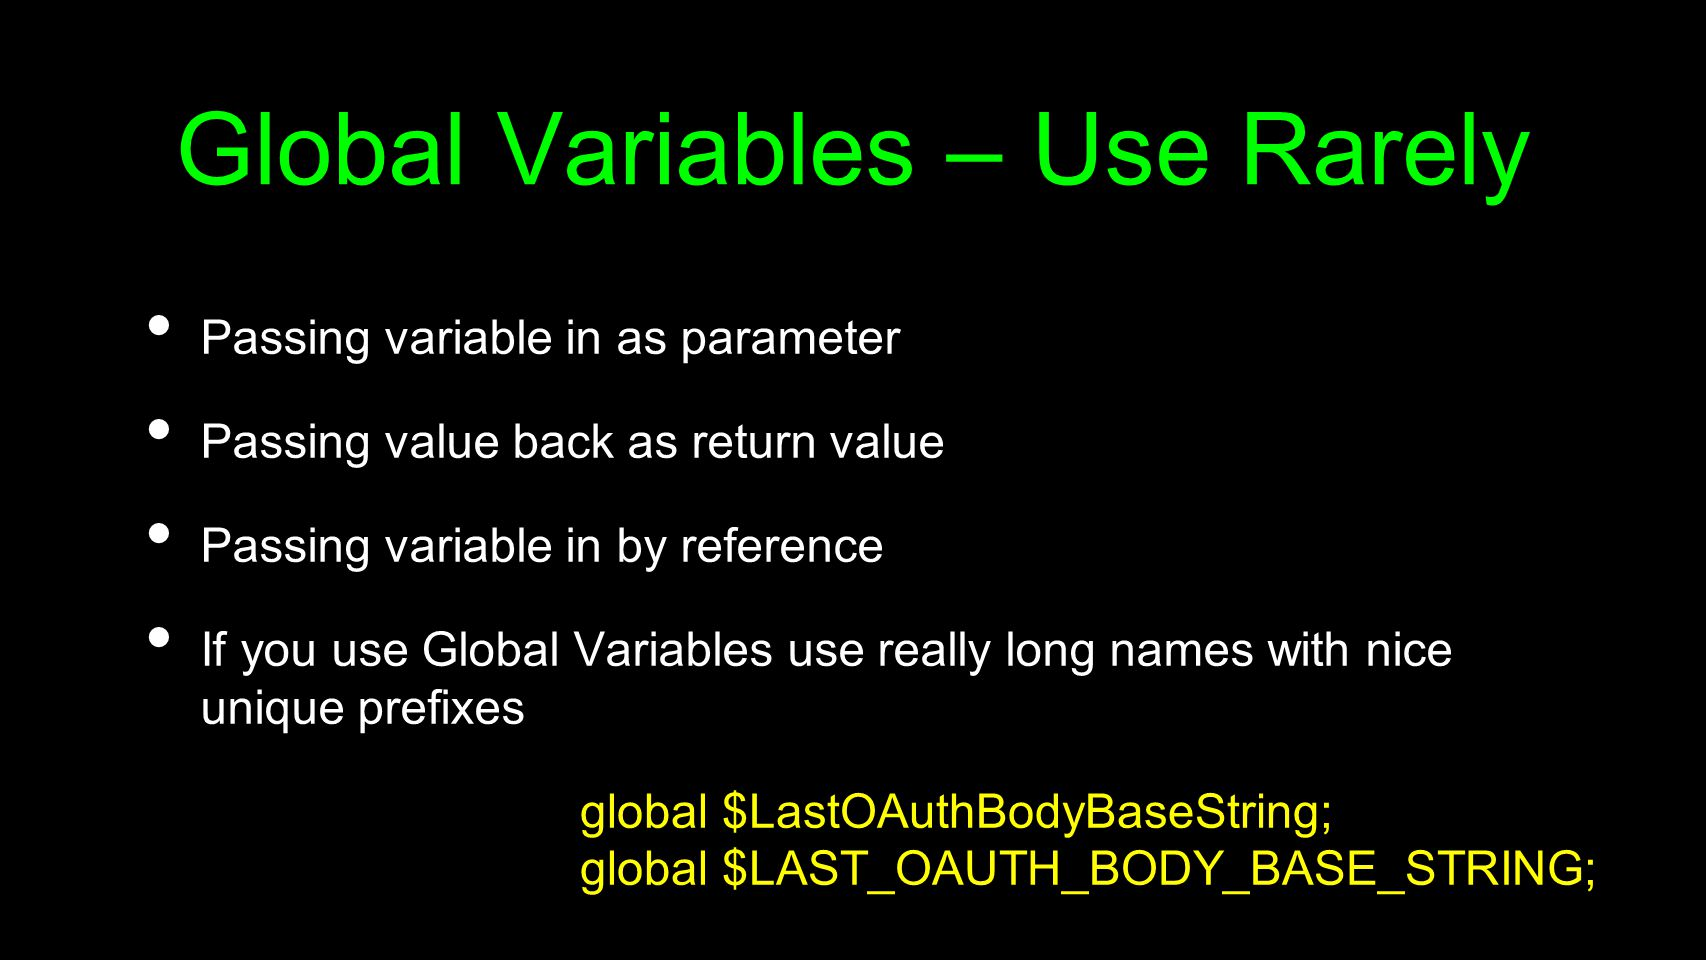 Global Variables – Use Rarely